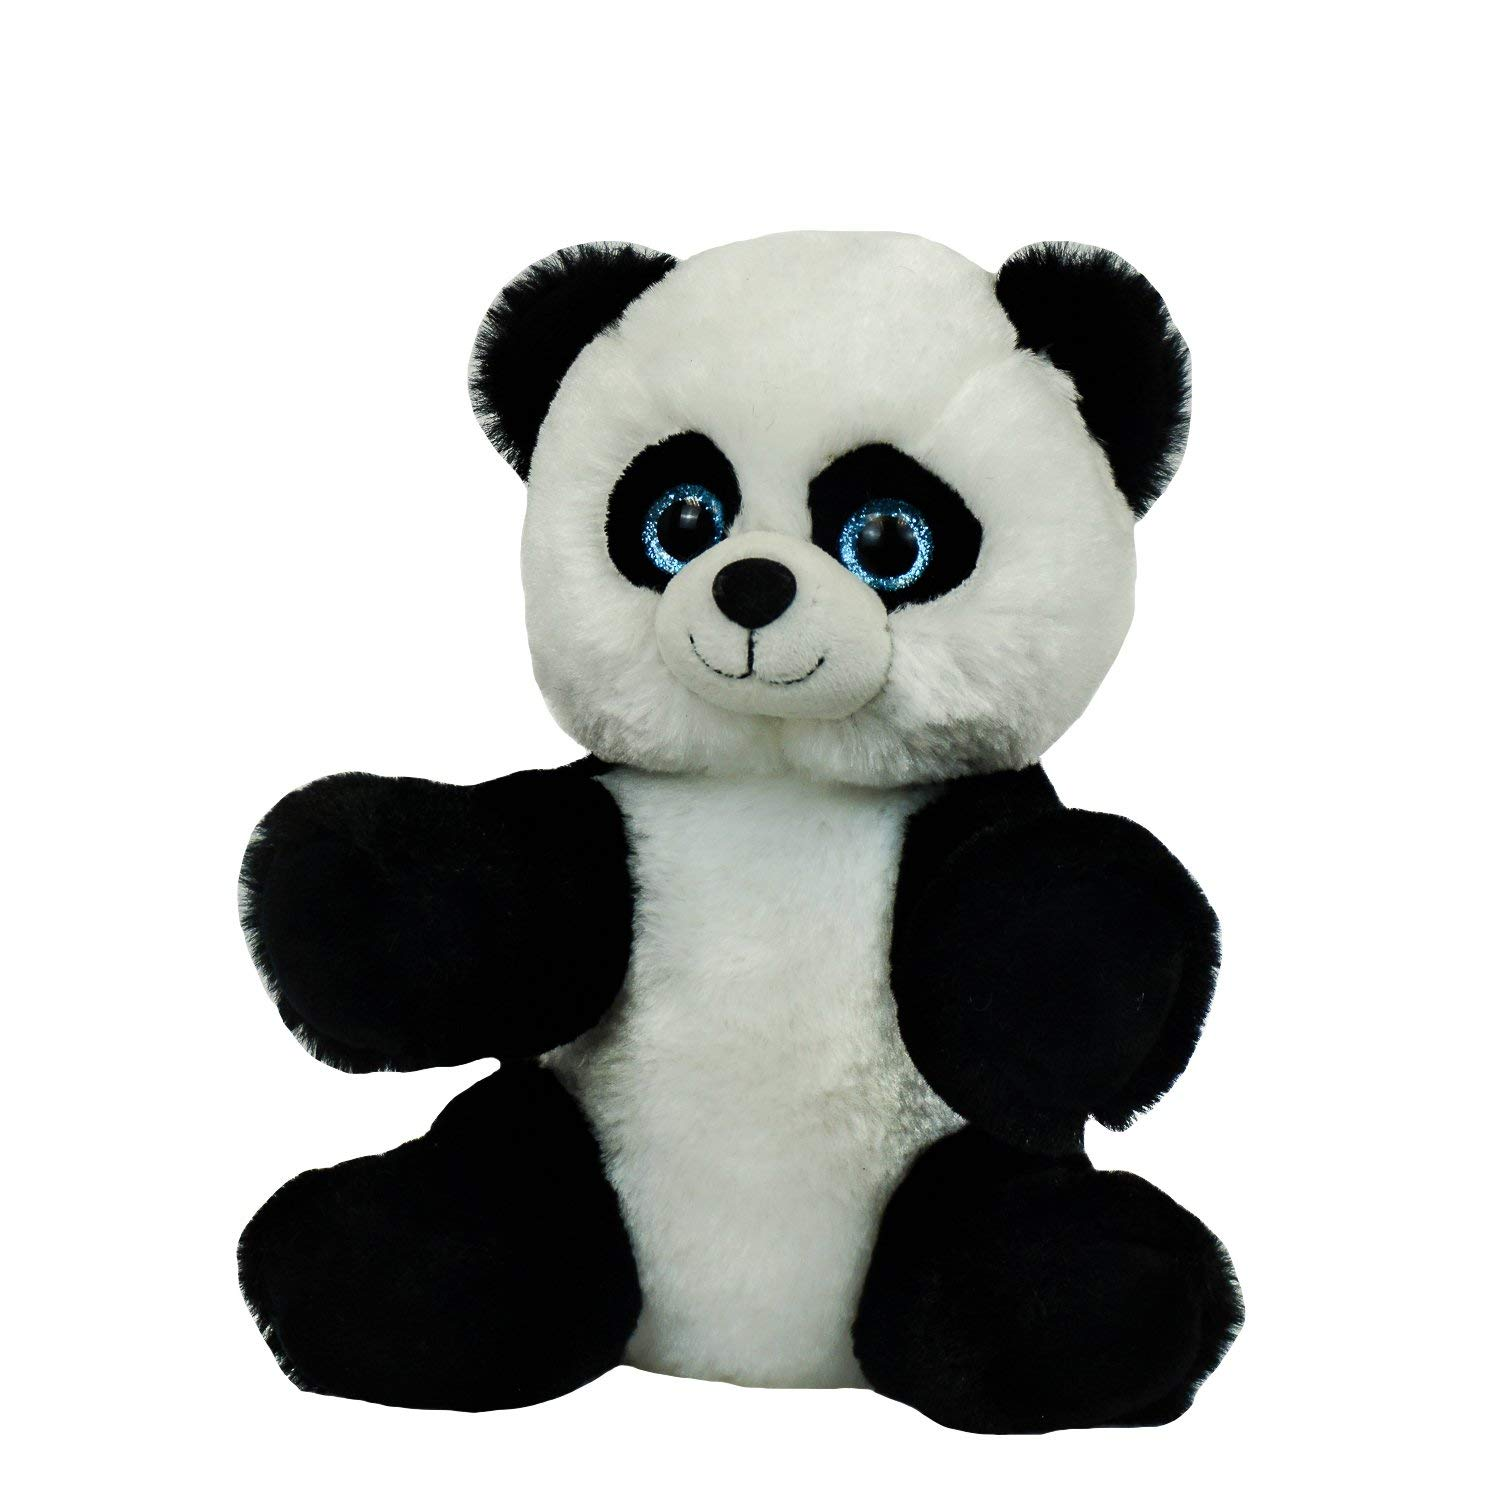 Recordable Teddy Bear Walmart, Recordable Stuffed 9 Teddy Bear Stuffed Animals Teddy Bears Bearegards Com Baby Heartbeat Bear Stuffed Animals Teddy Bears Stuffed Animals Plush Toys